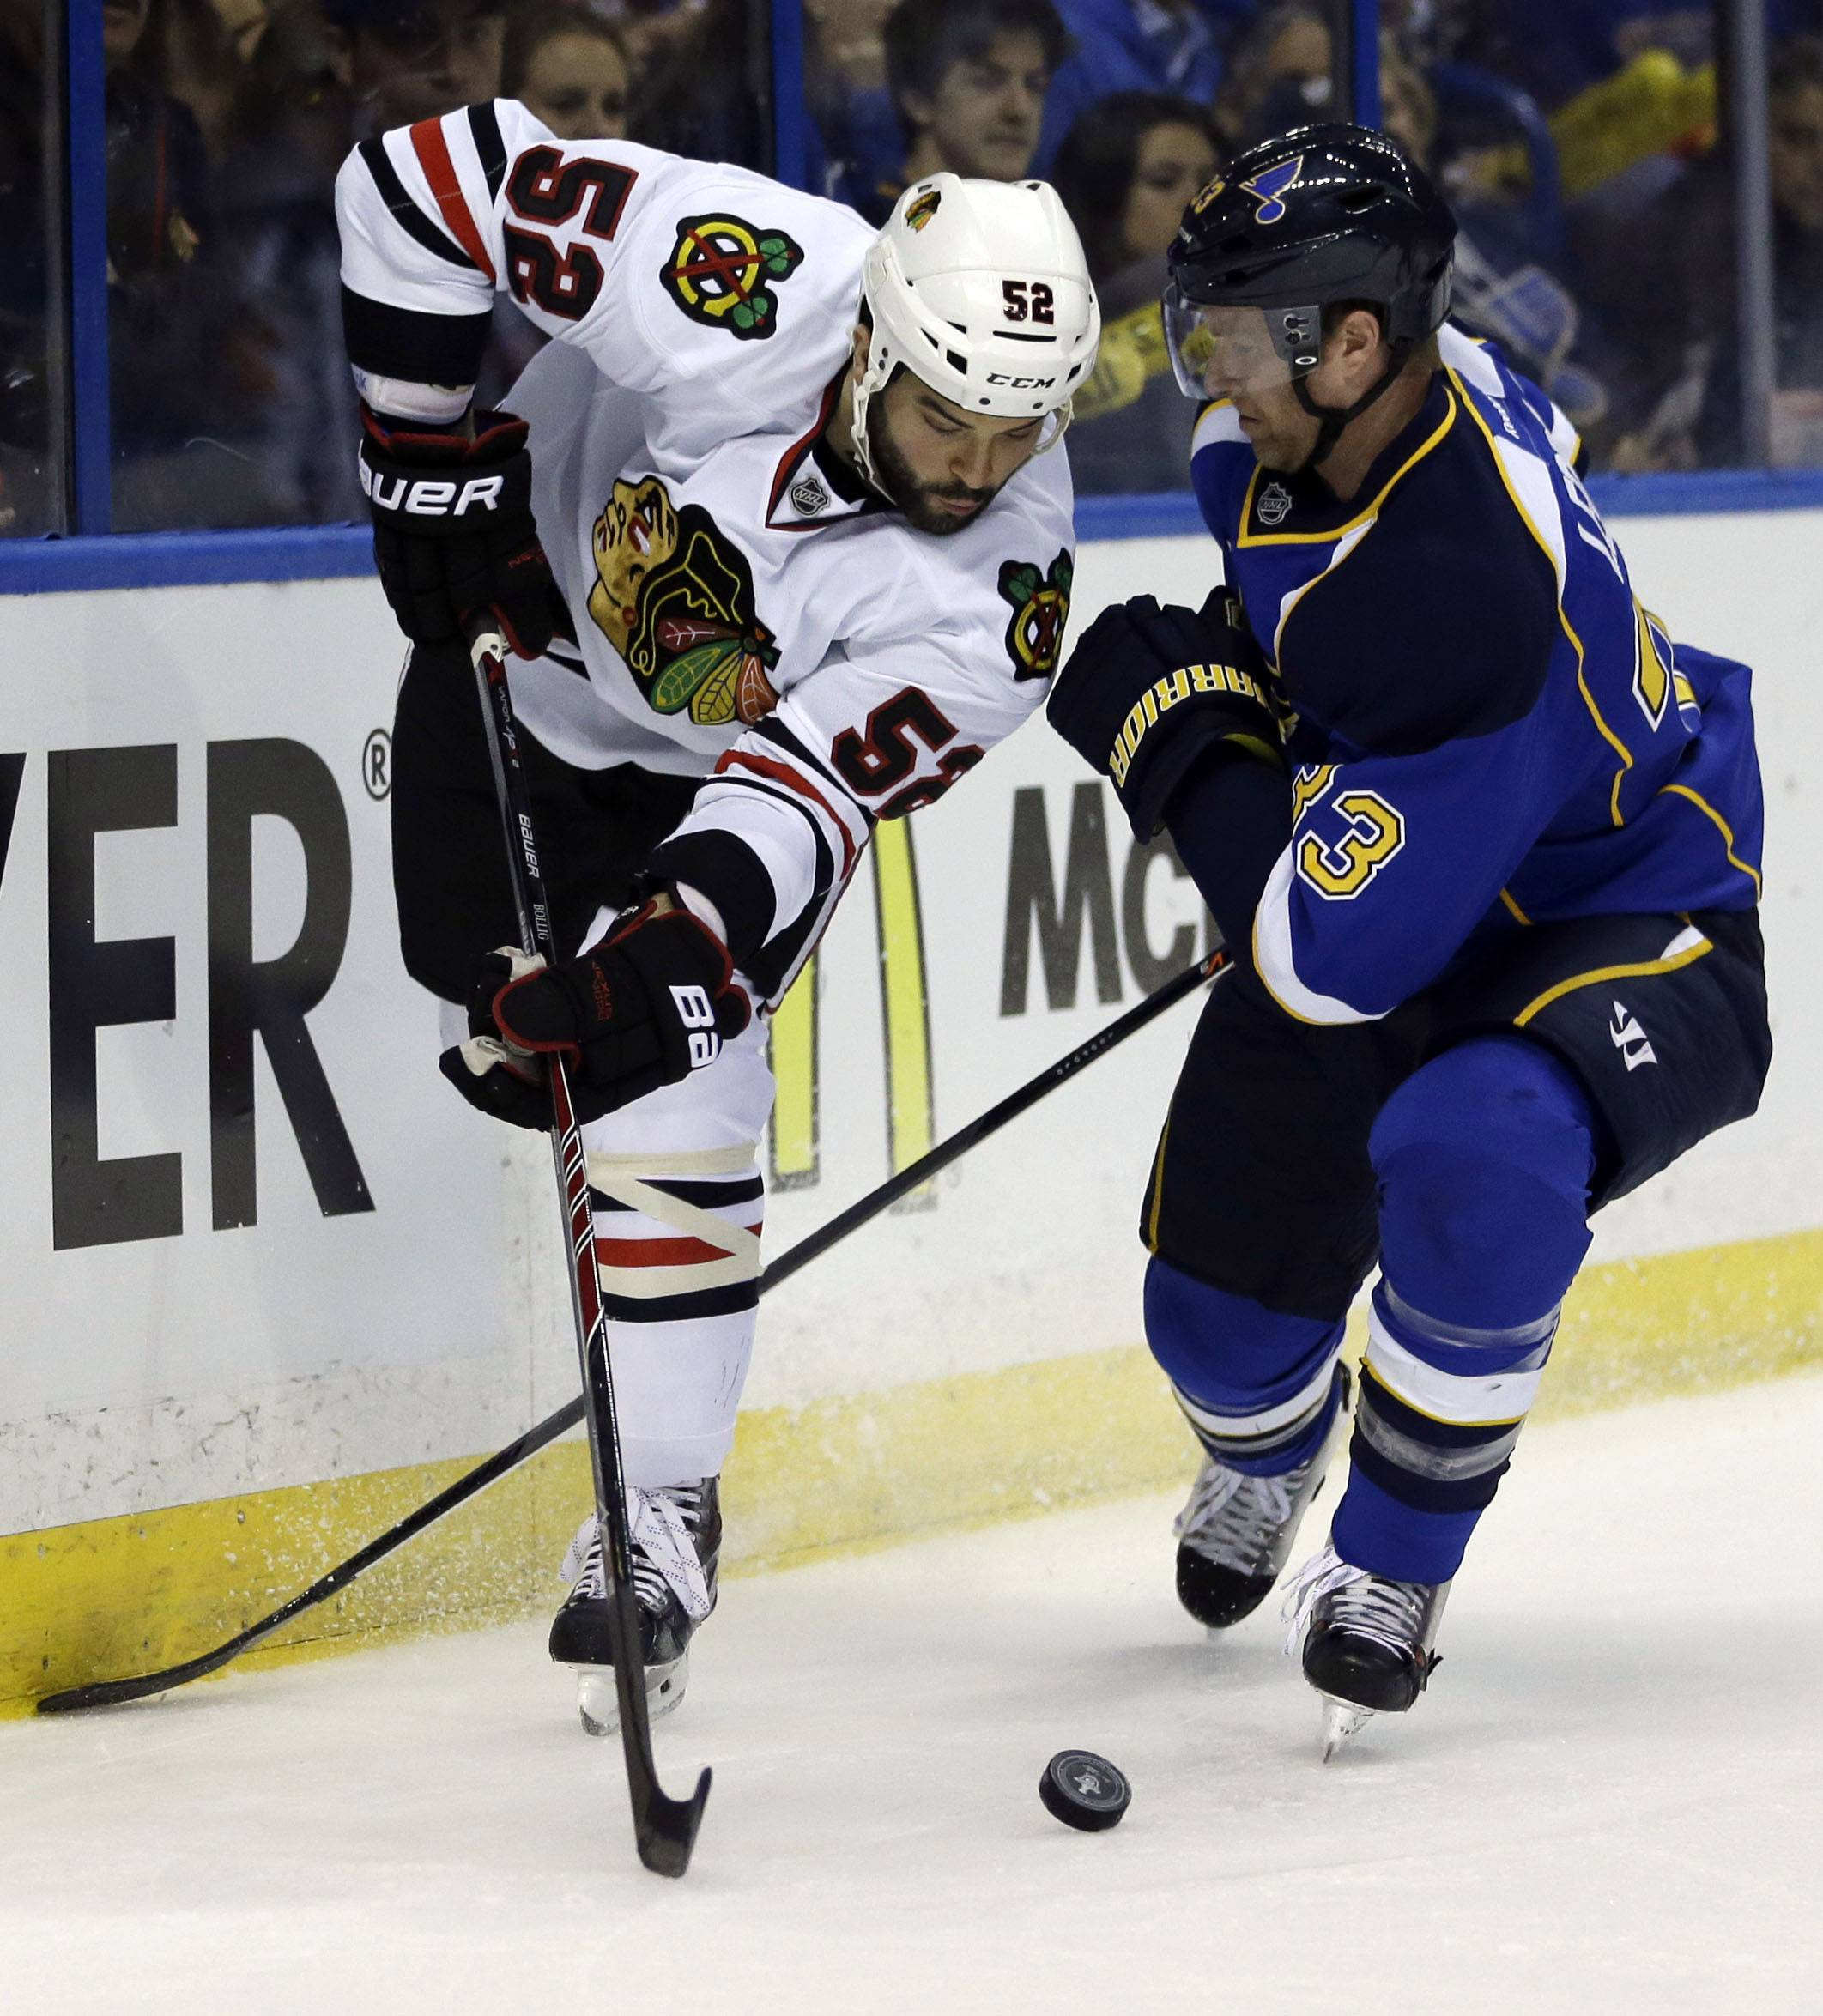 Chicago Blackhawks' Brandon Bollig, left, passes the puck as St. Louis Blues' Jordan Leopold defends during the first period .